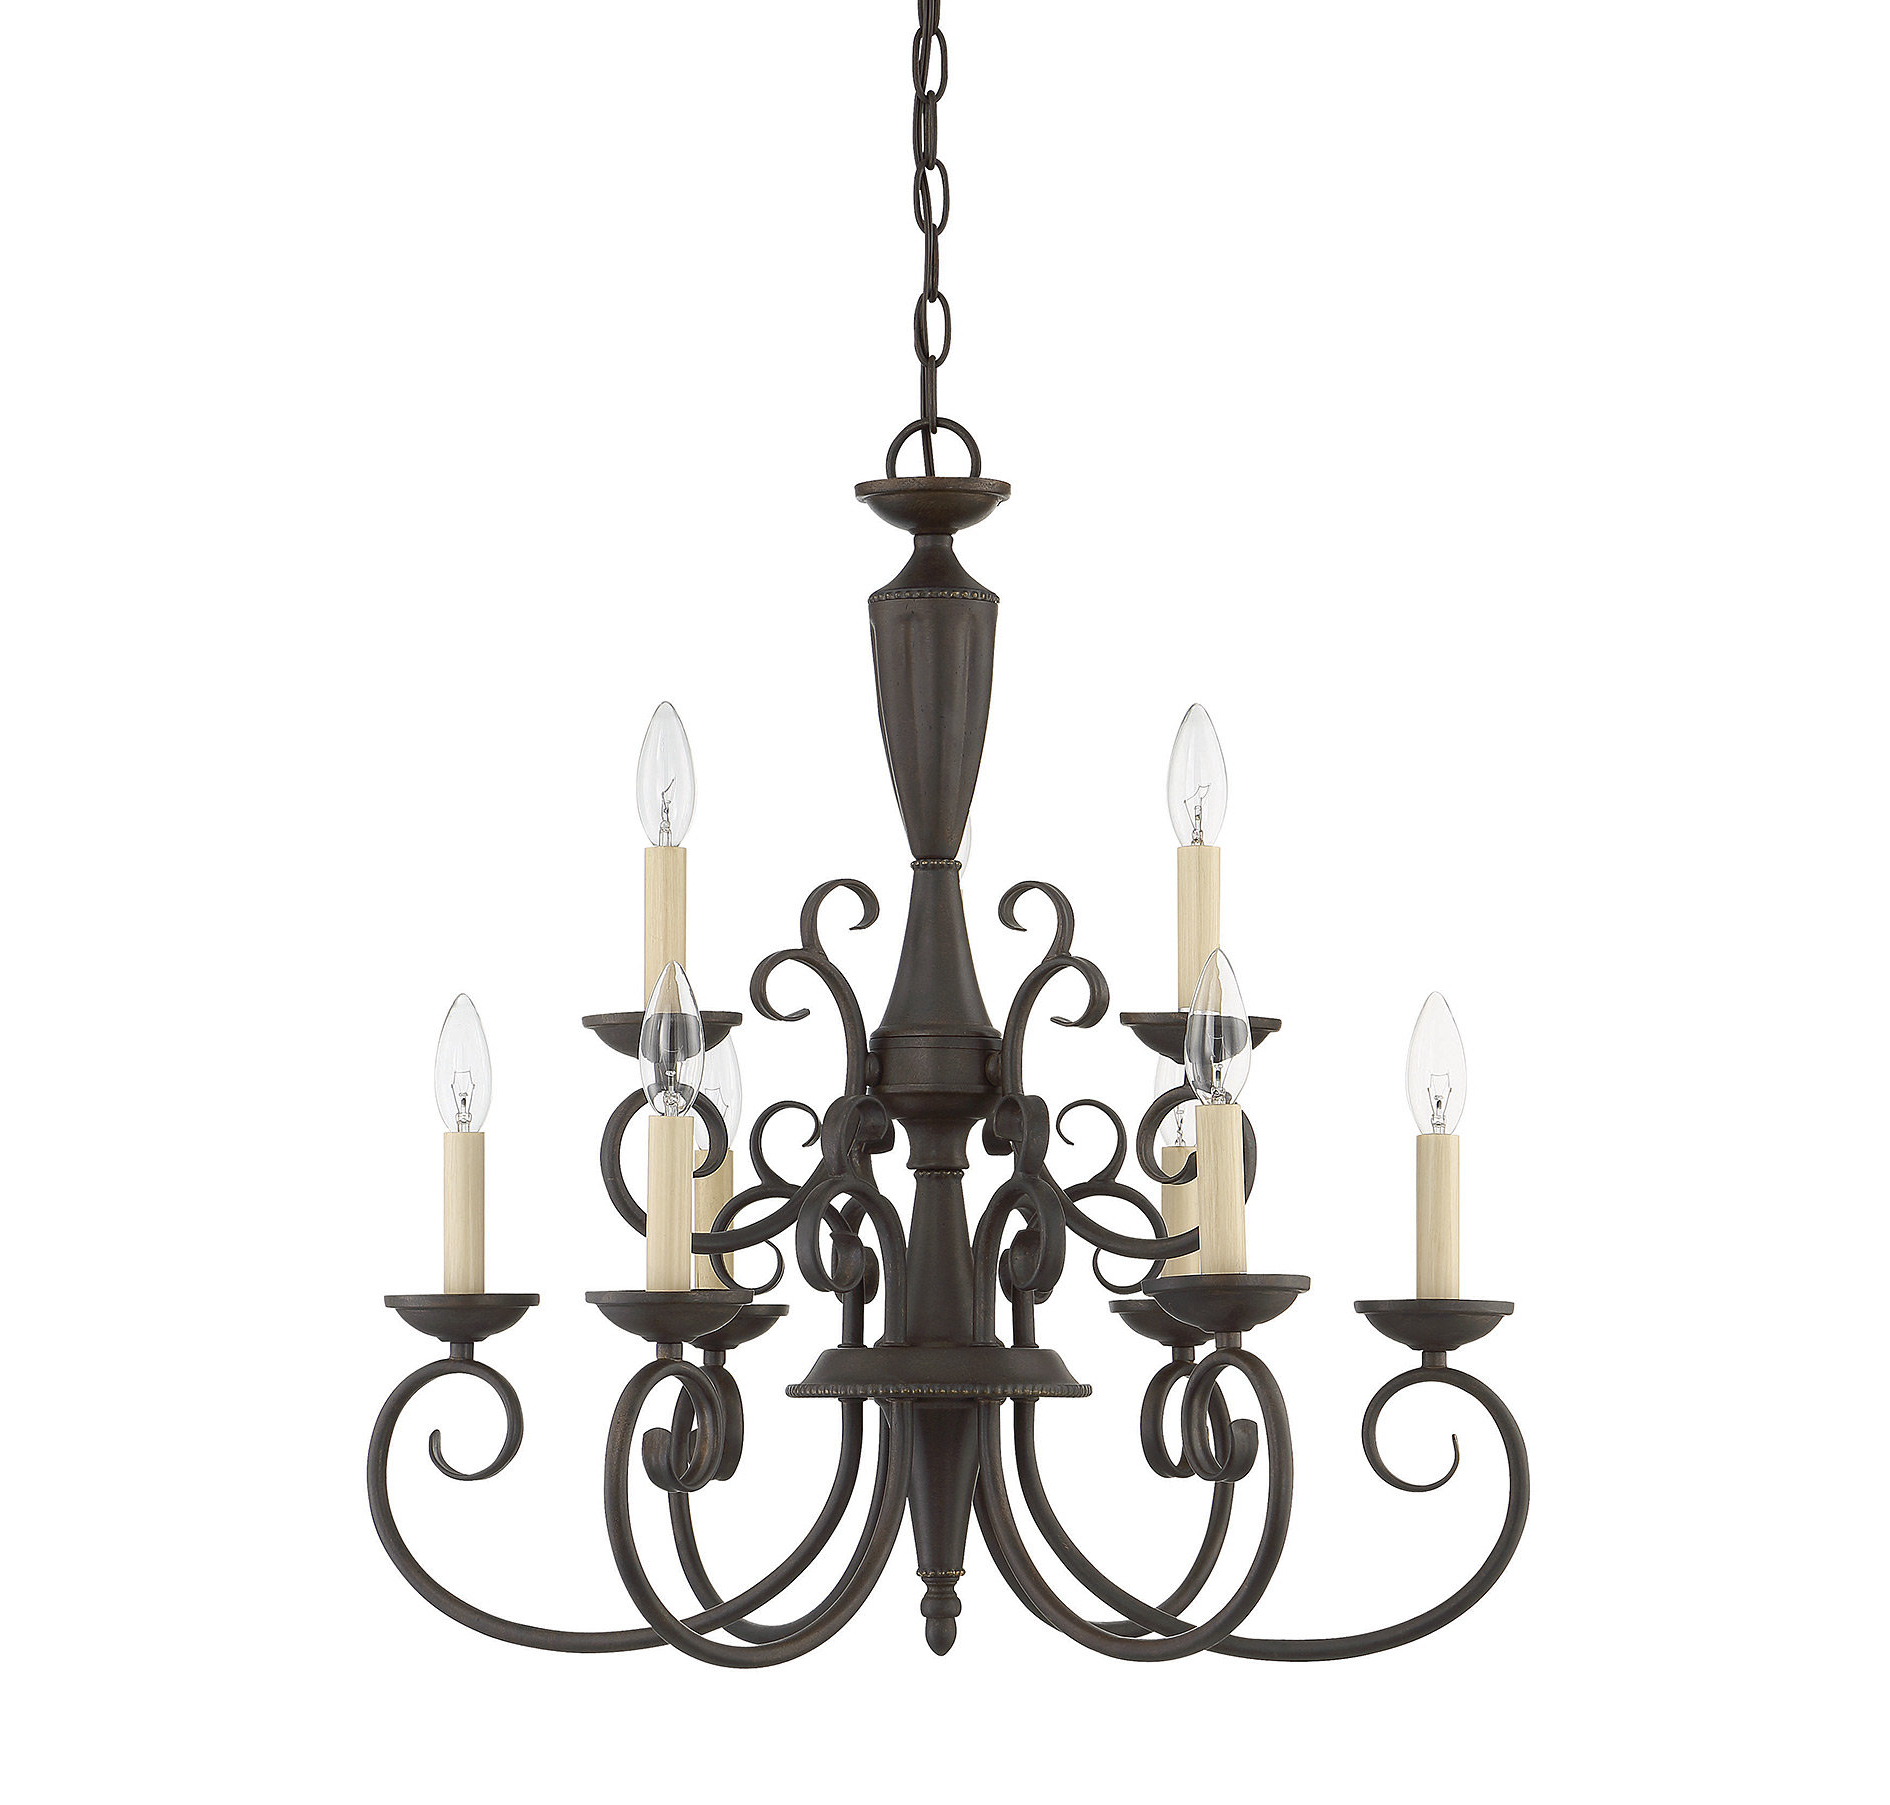 Wayfair Intended For Giverny 9 Light Candle Style Chandeliers (Gallery 8 of 20)